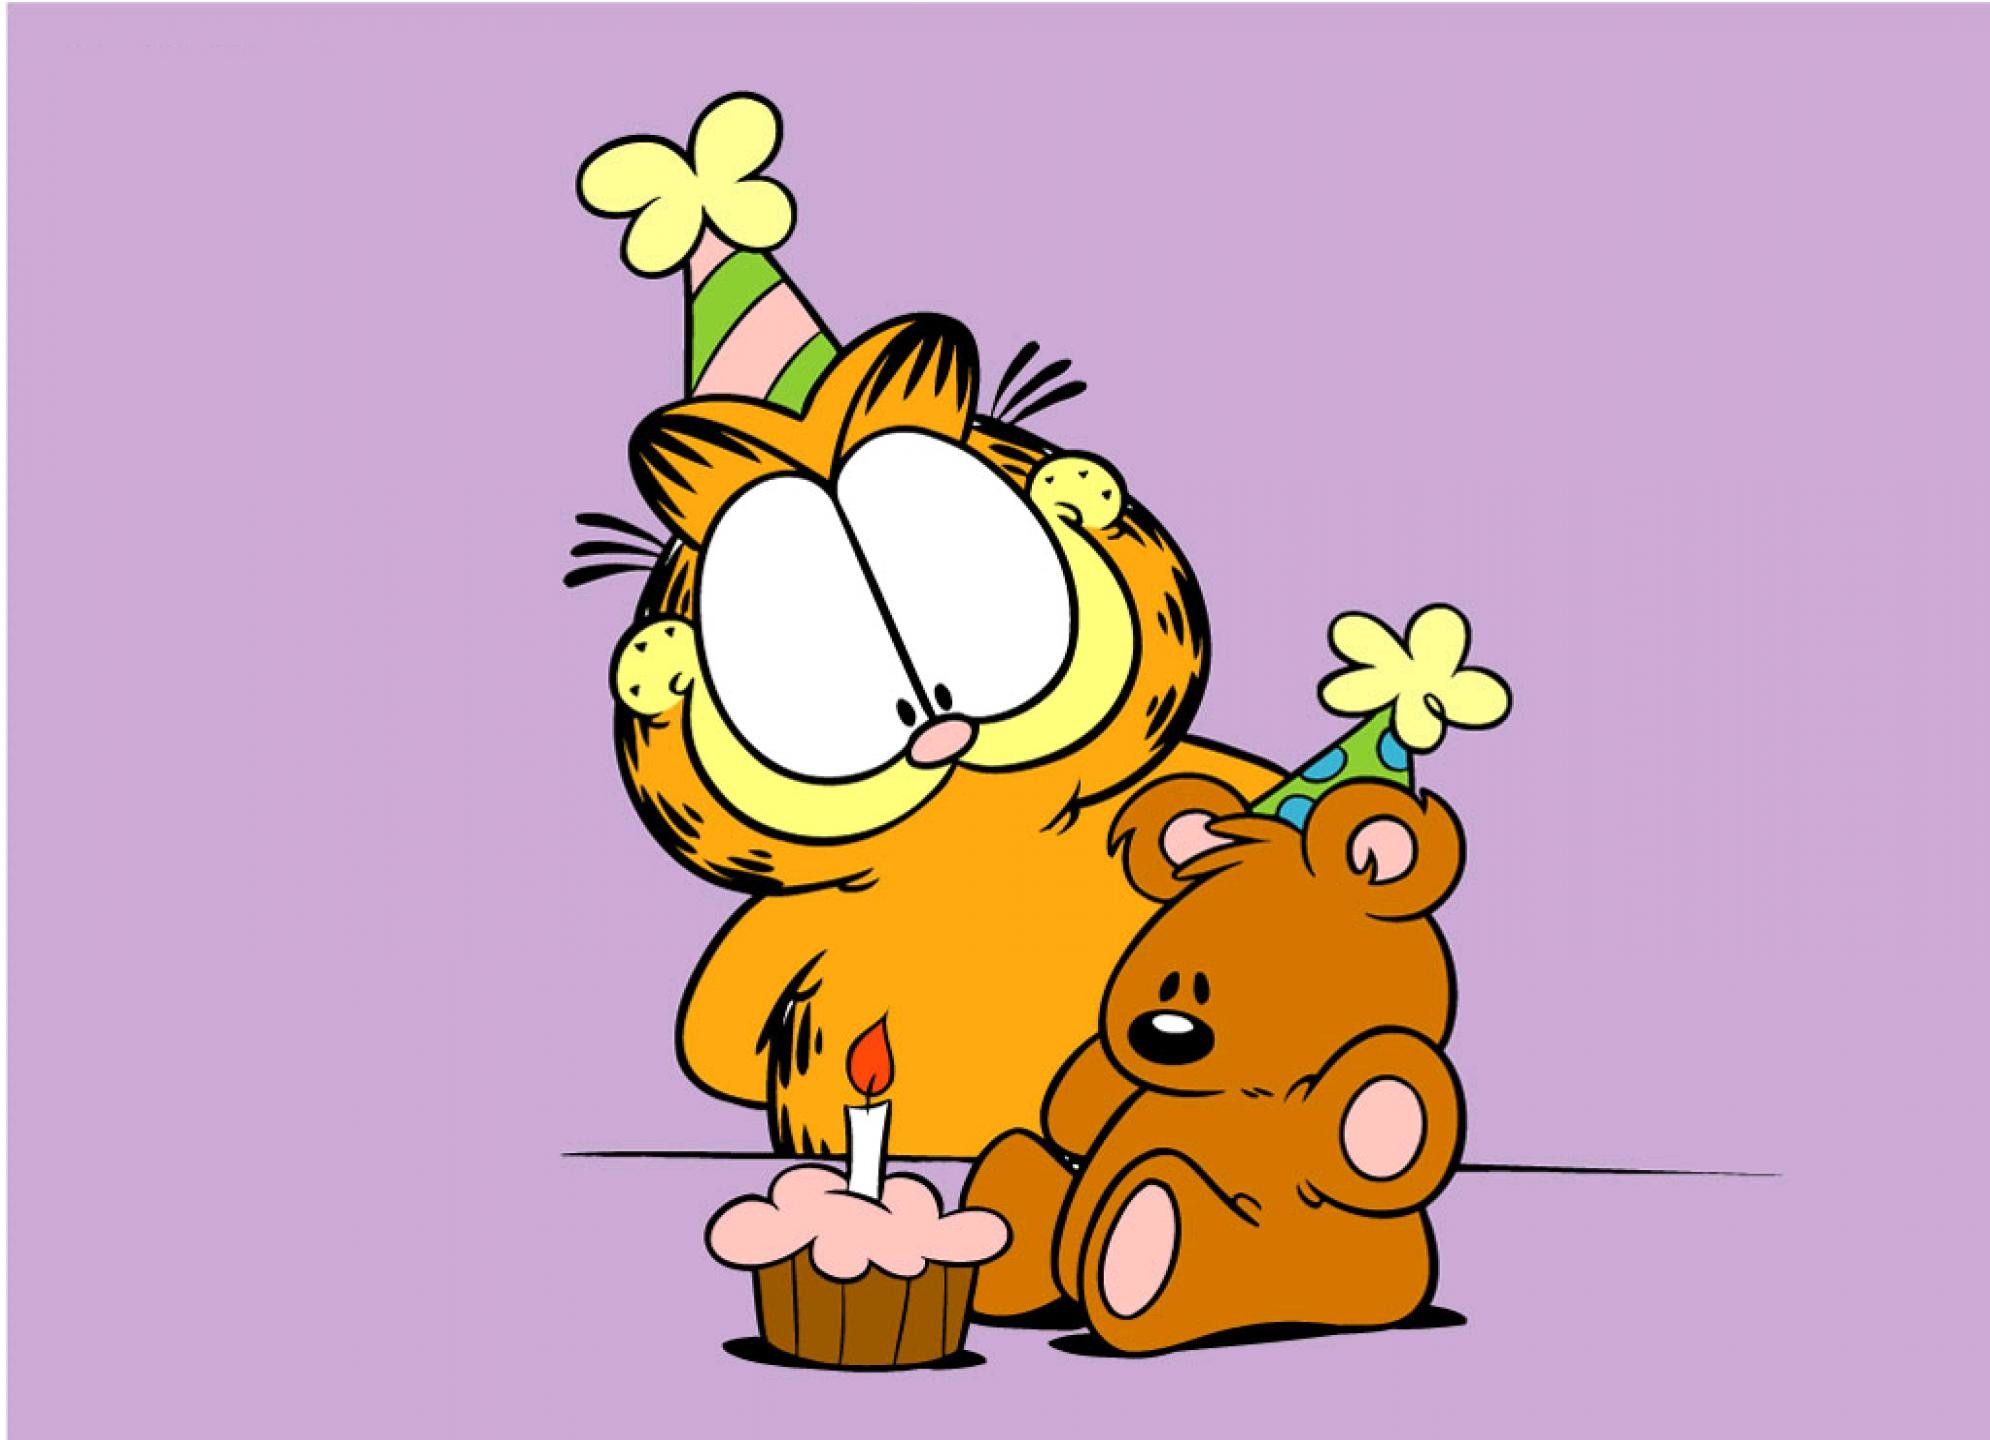 1990x1440 Garfield Comics Garfield Wallpaper Free For Tablet Garfield 1990×1440